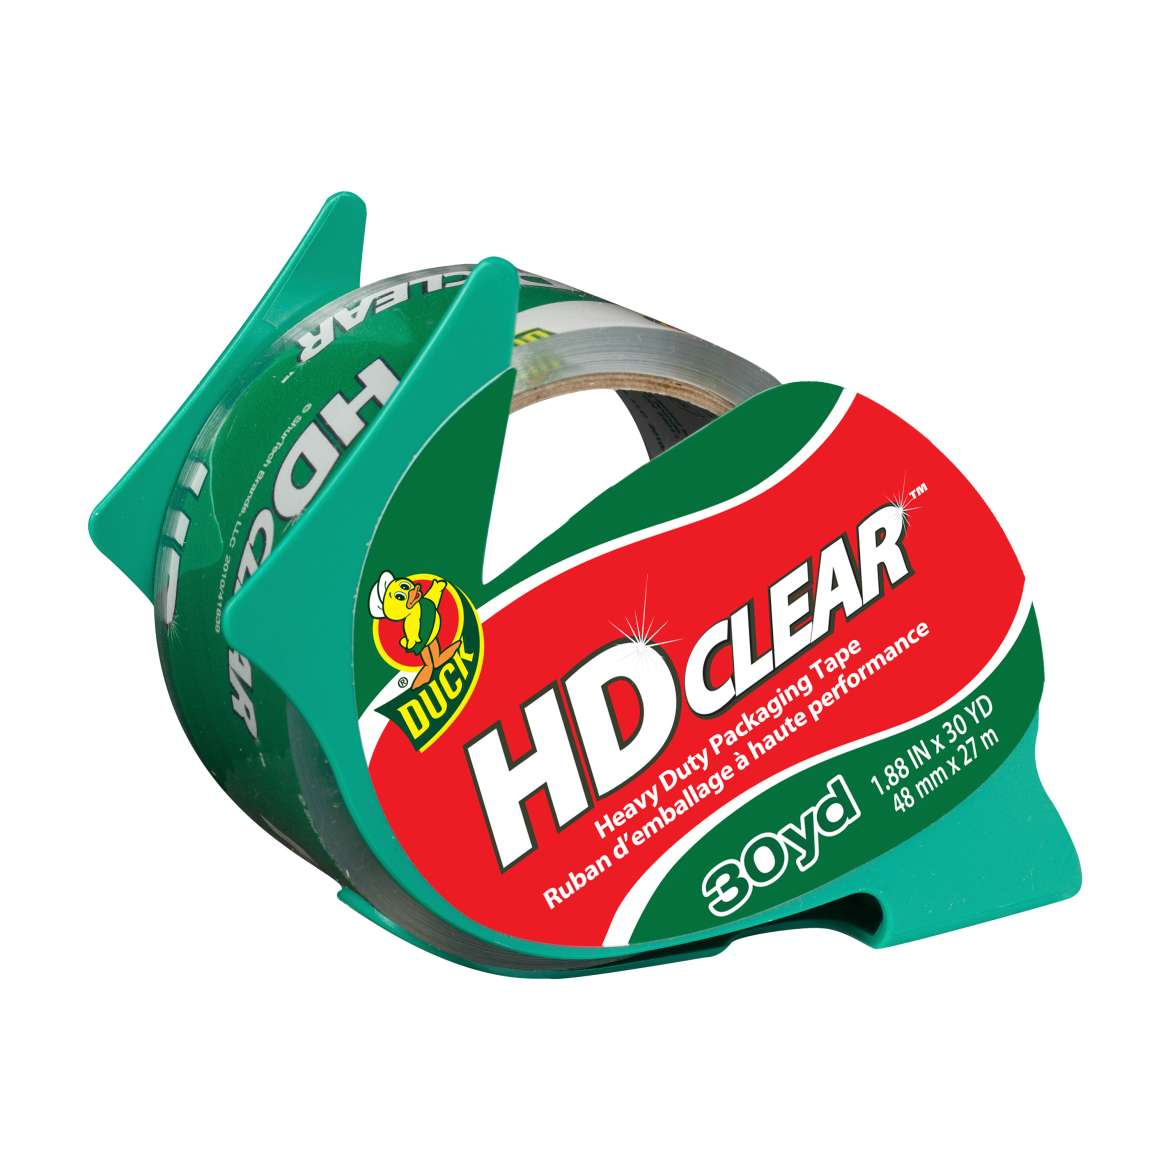 HD Clear™ Heavy Duty Packaging Tape with Dispenser - Clear, 1.88 in. x 30 yd. Image